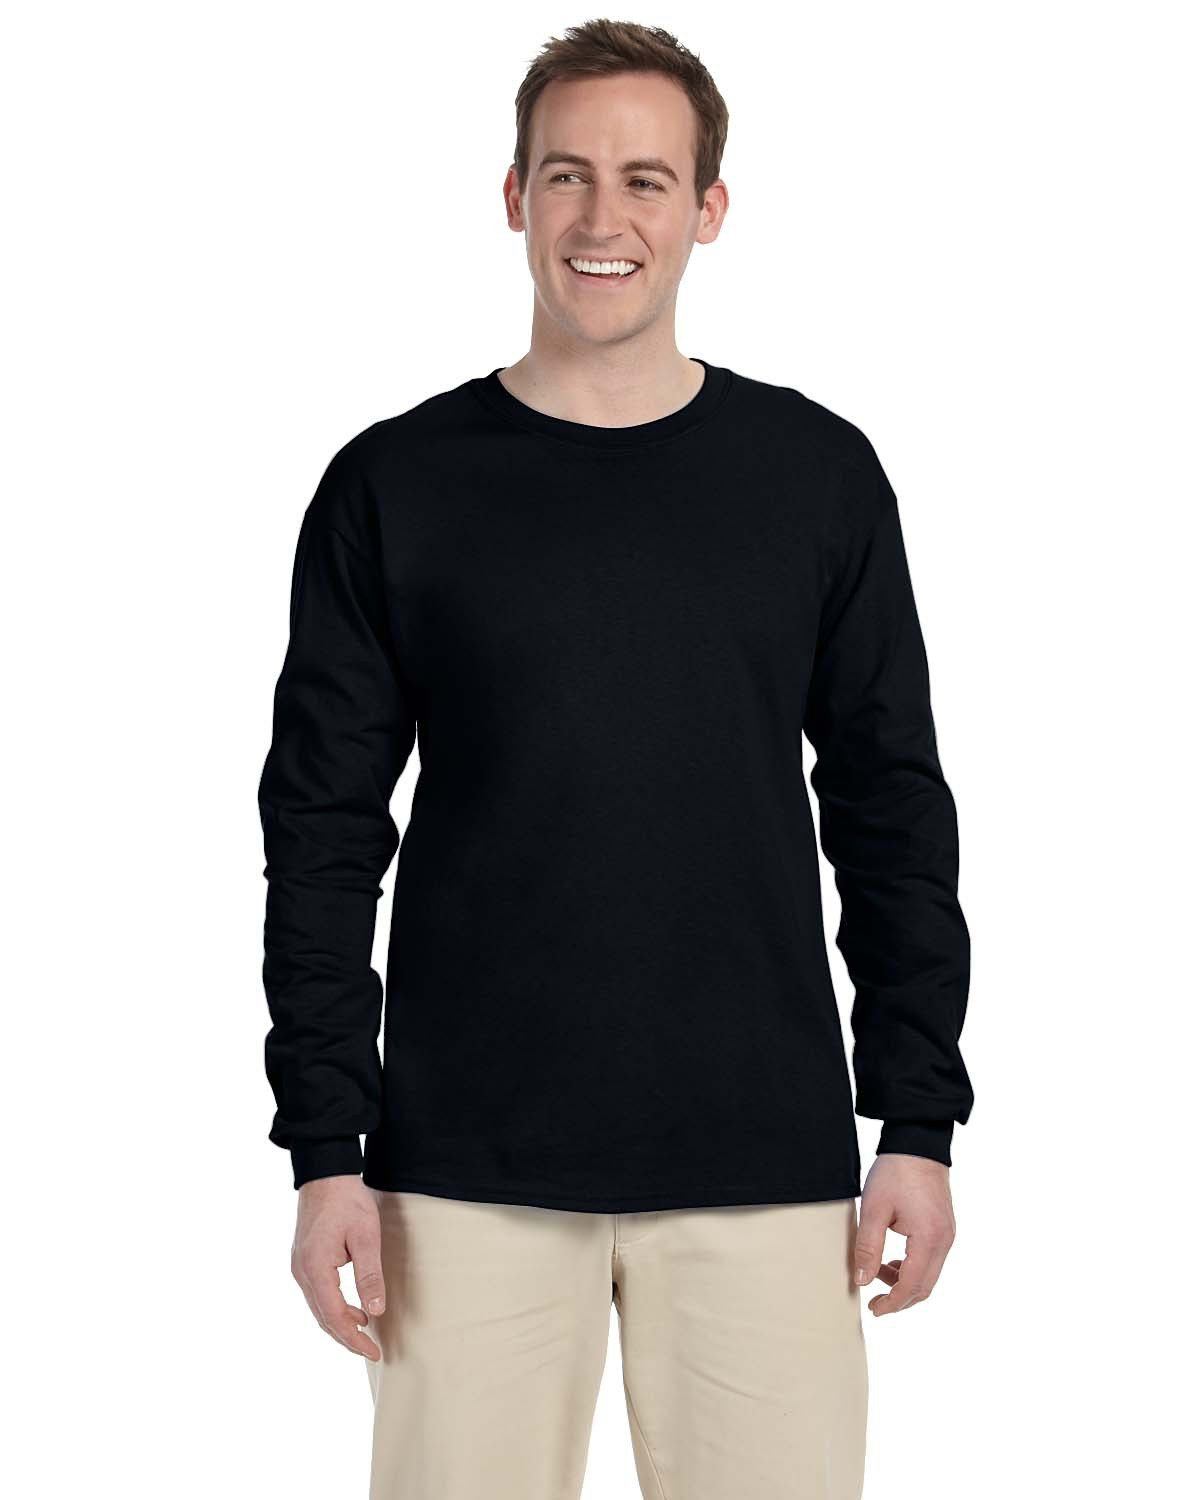 Fruit of the Loom Adult HD Cotton™ Long-Sleeve T-Shirt BLACK